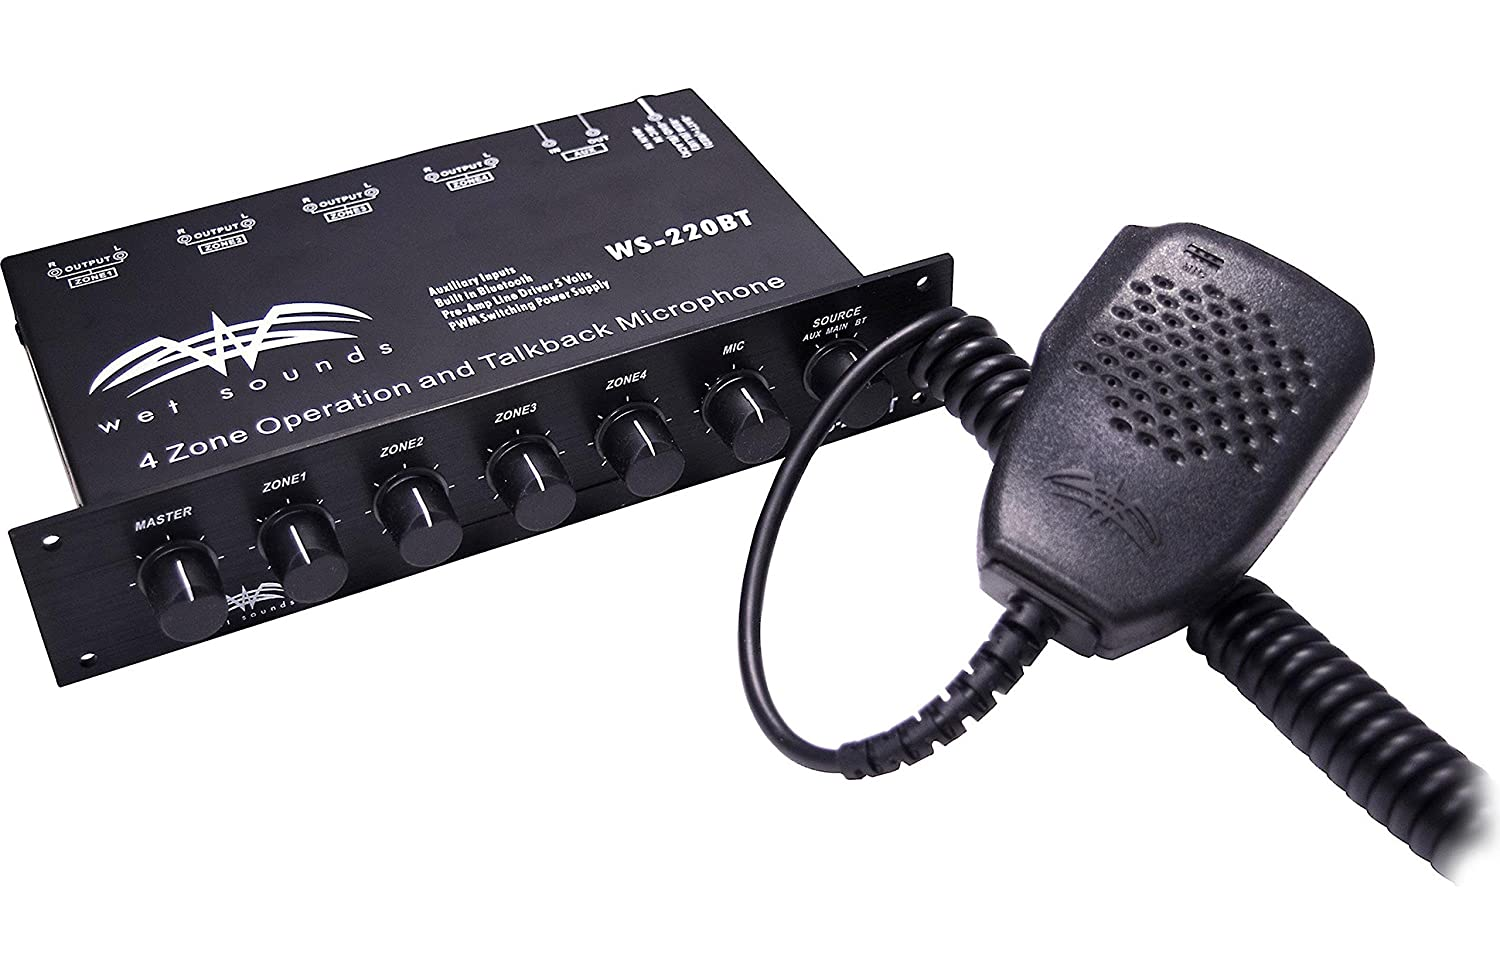 Wet Sounds WS-220 BT 4-Zone Marine Level Controller with aux Input and Bluetooth